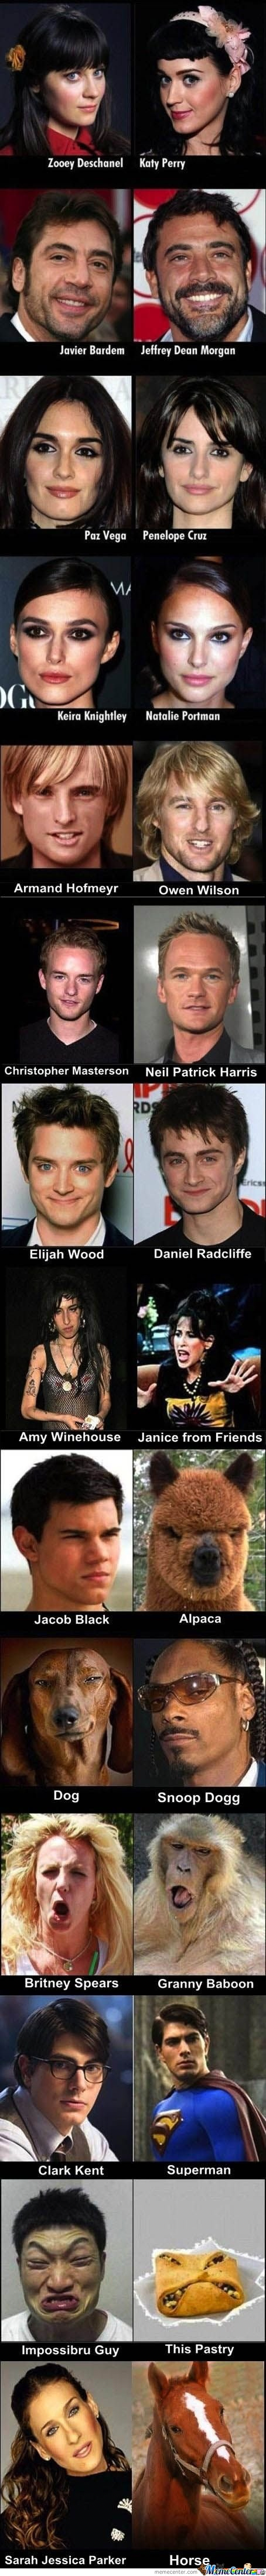 Celebrities Look Alikes